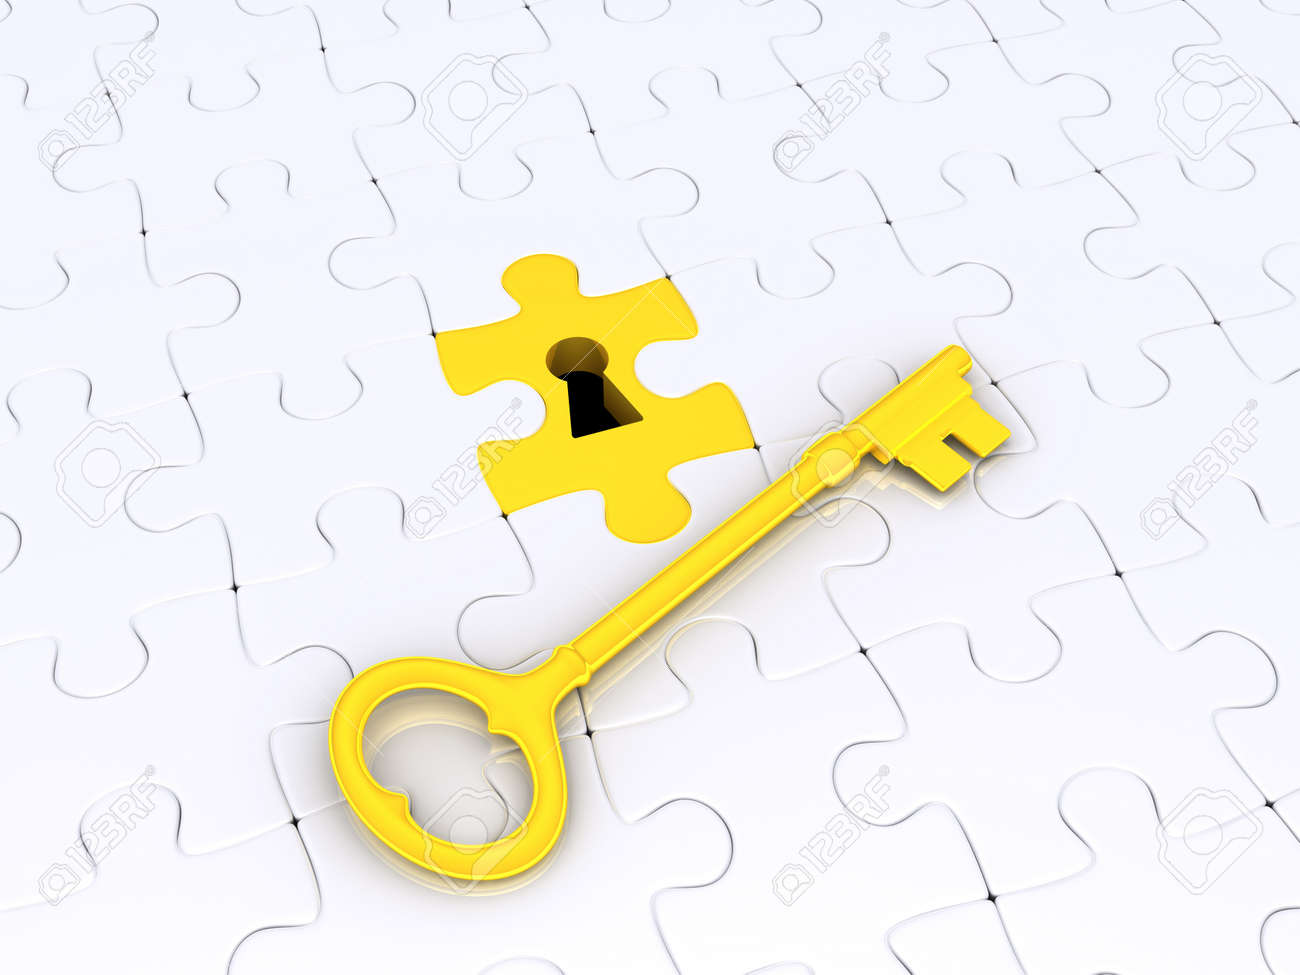 With golden key 3d rendering plan concept with golden key 3d rendering - 3d Golden Key On White Puzzle Pieces With Keyhole Stock Photo 15254664